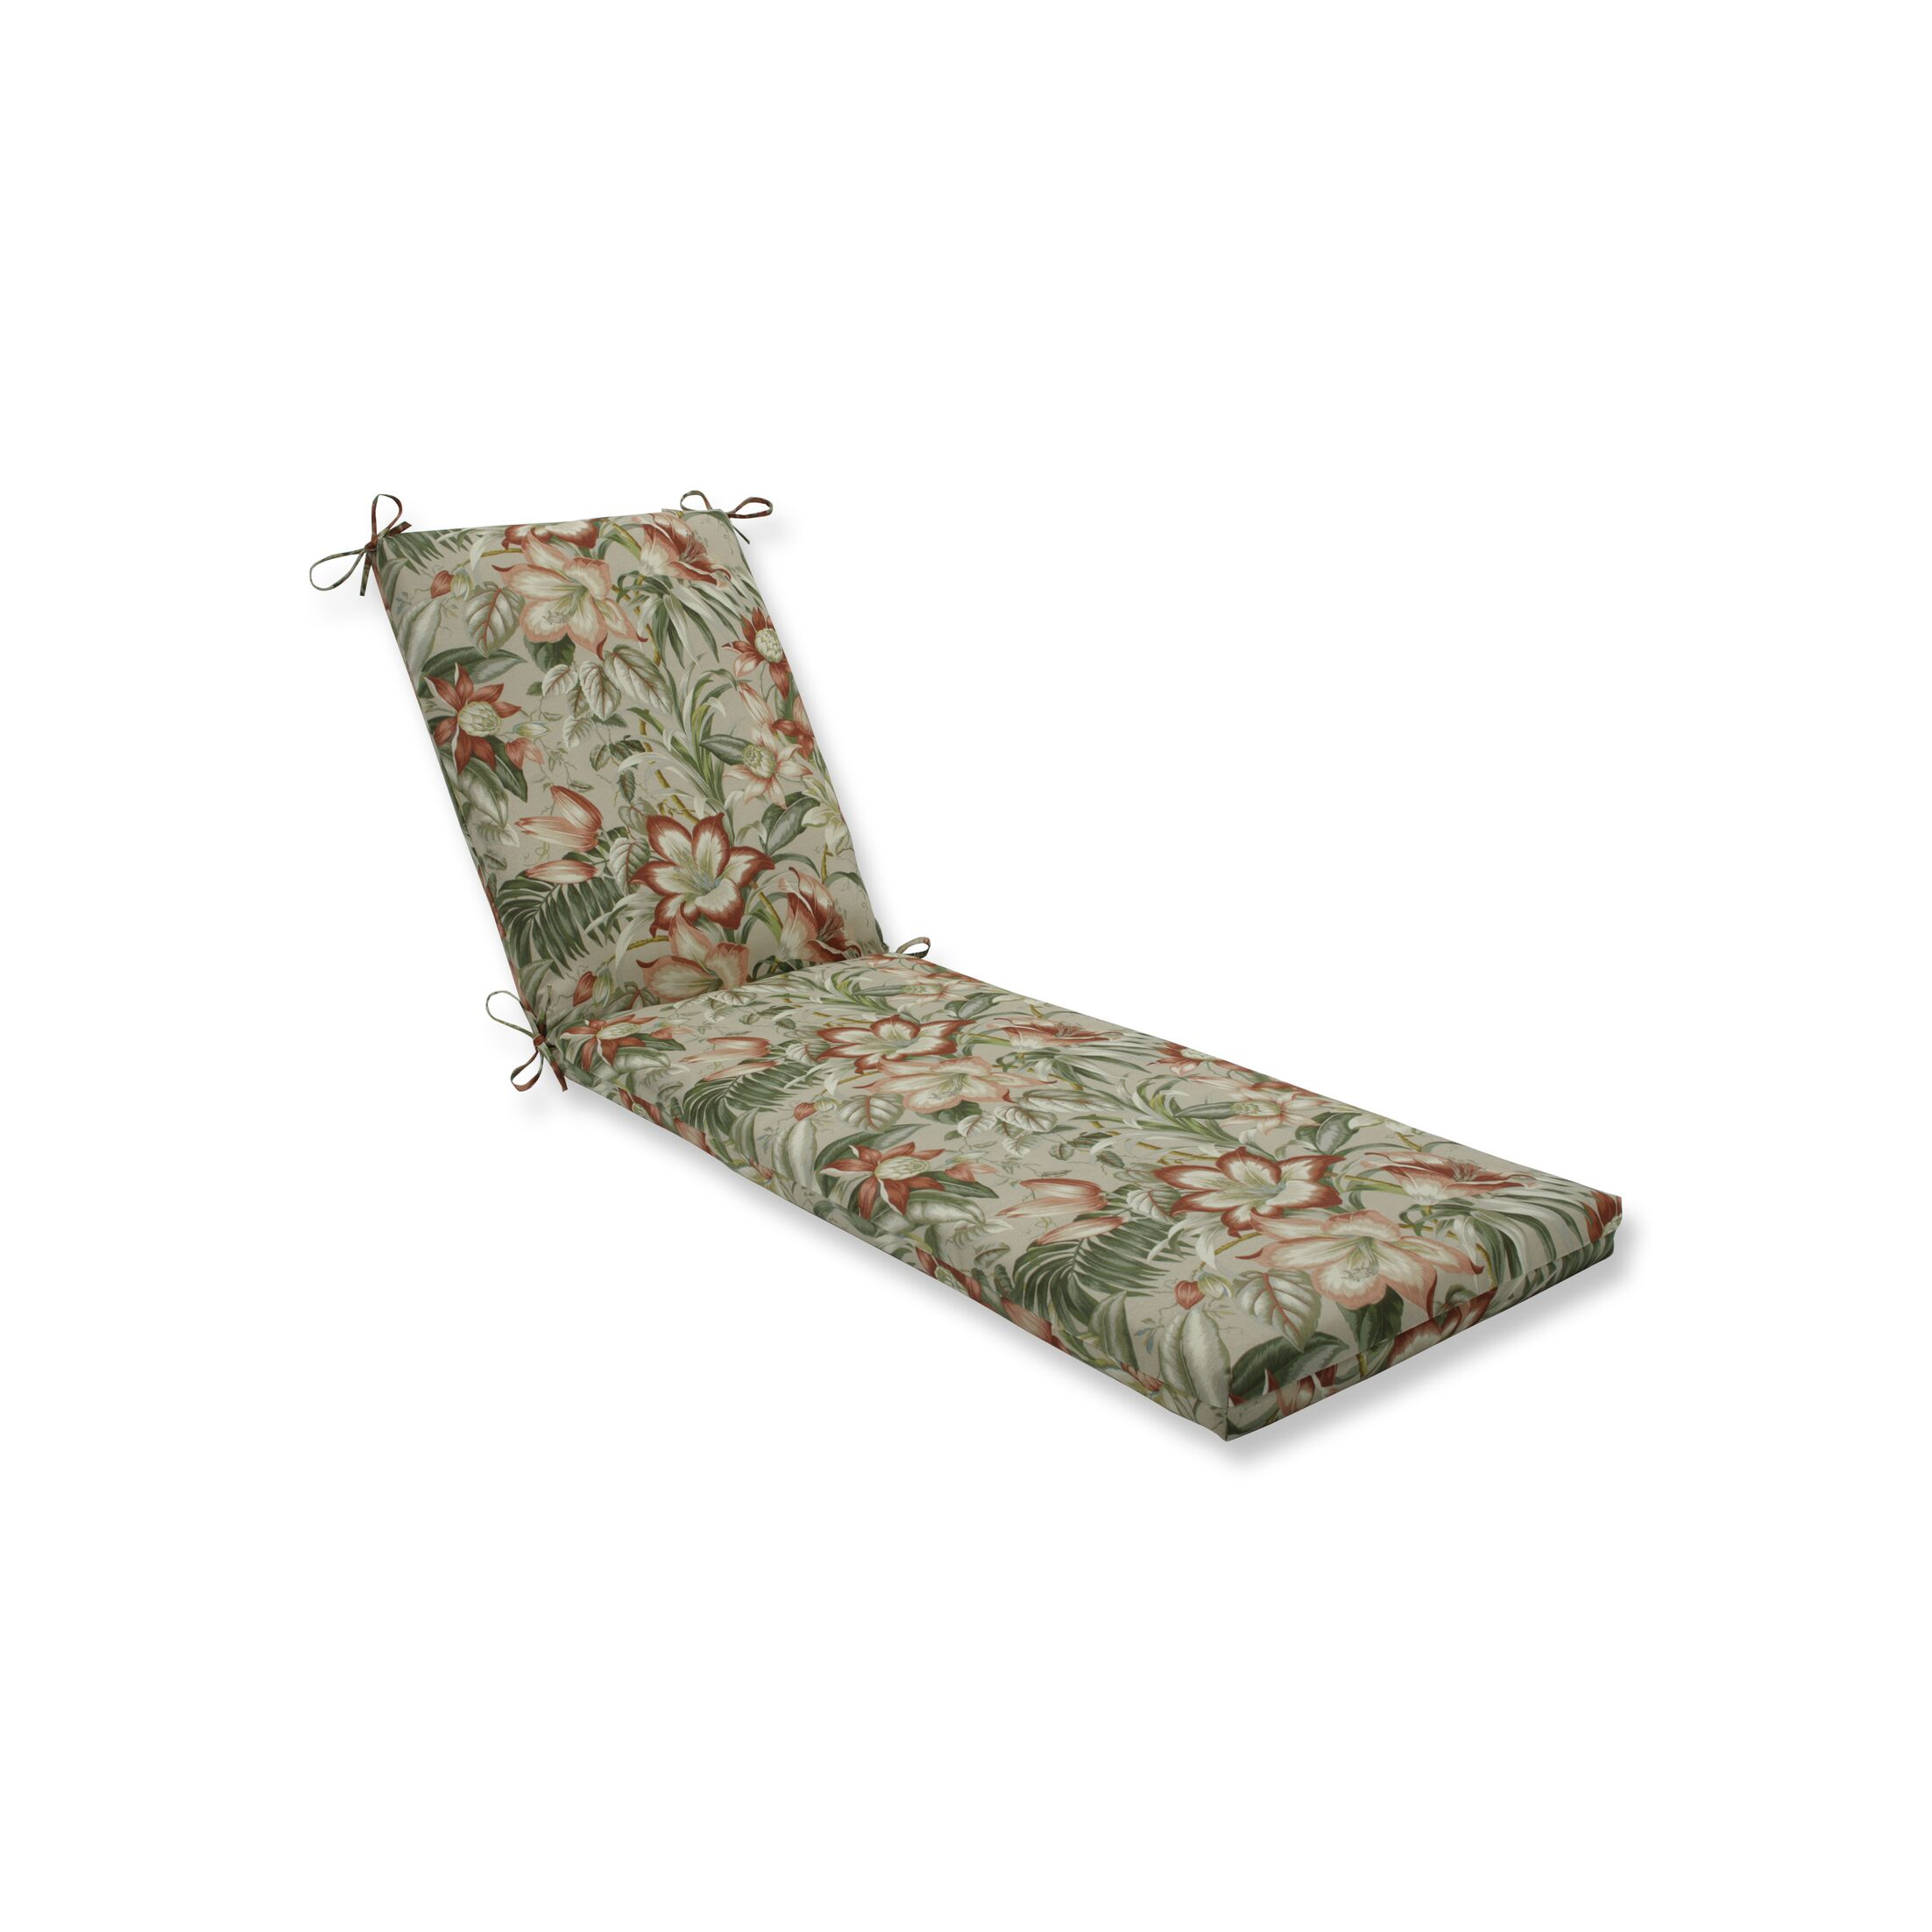 Botanical Indoor/Outdoor Chaise Lounge Cushion